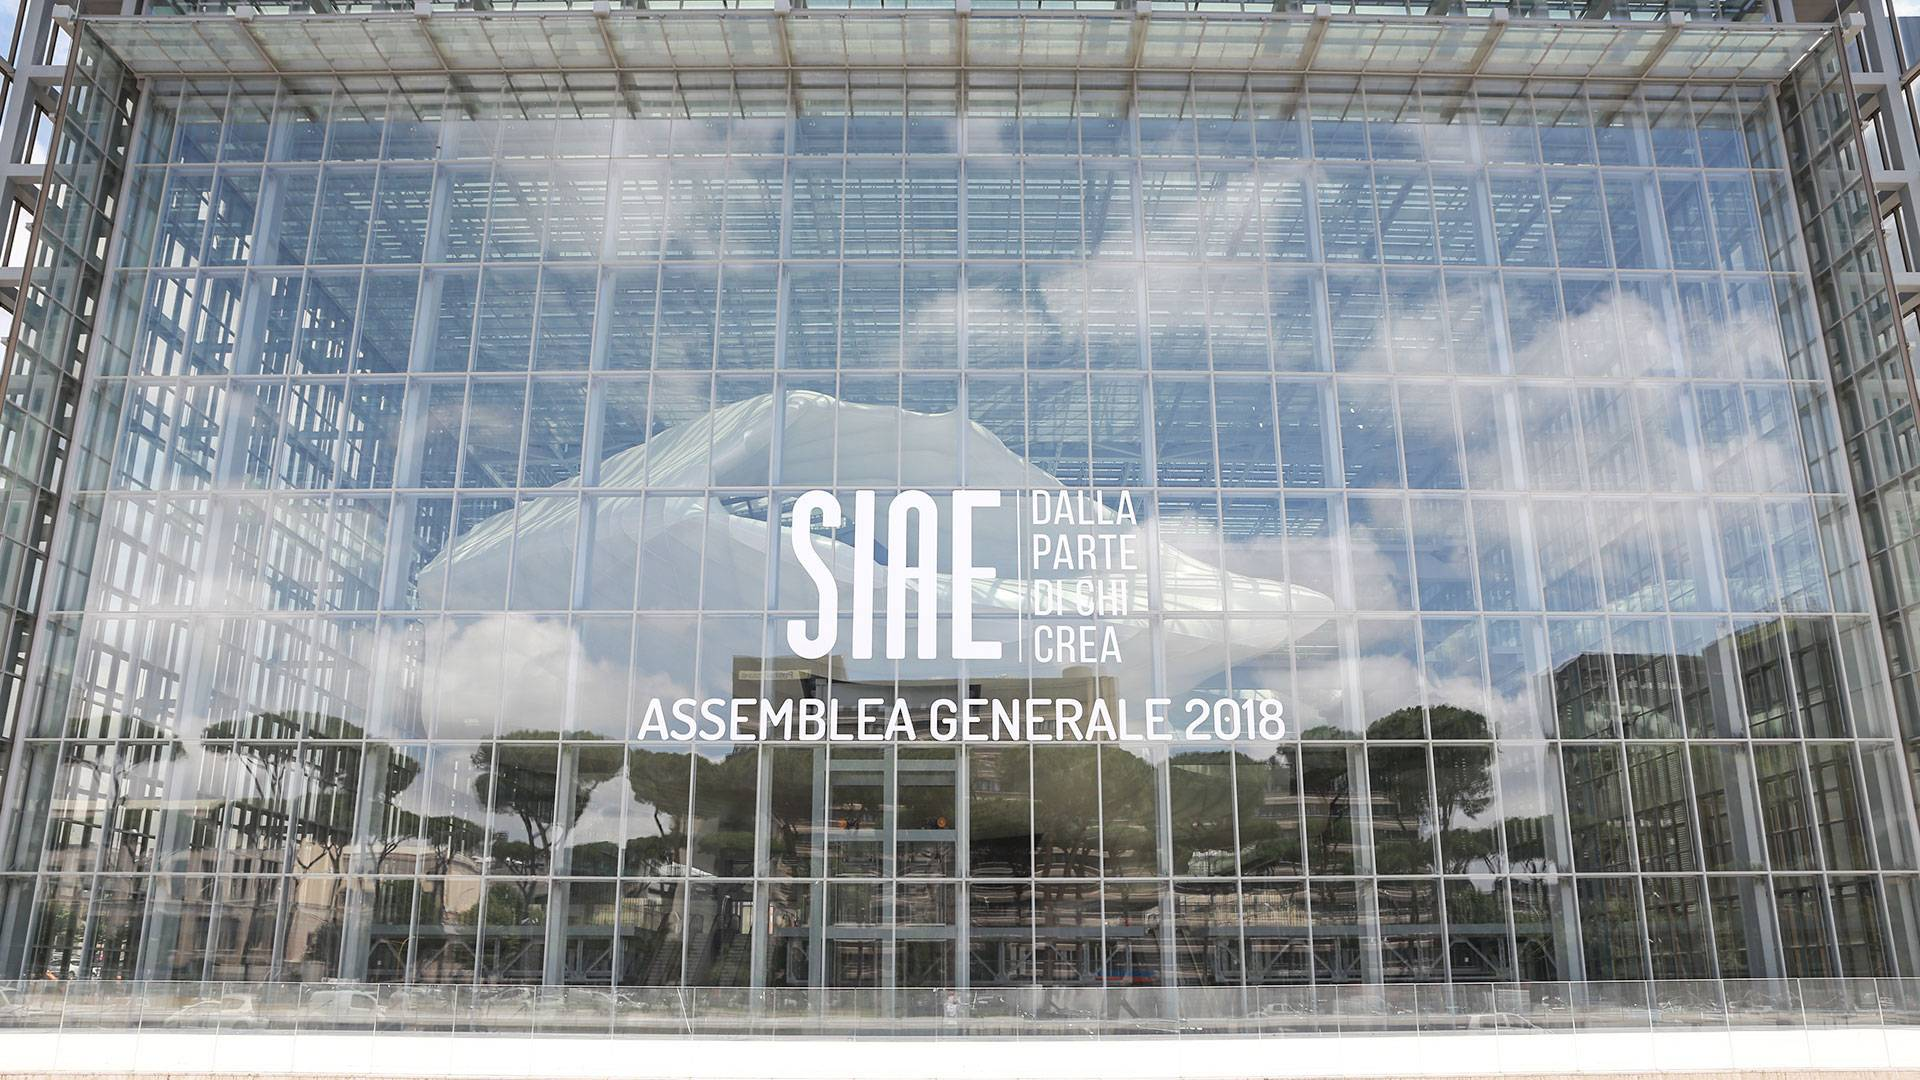 SIAE Italian Society for the Rights of Authors and Editors